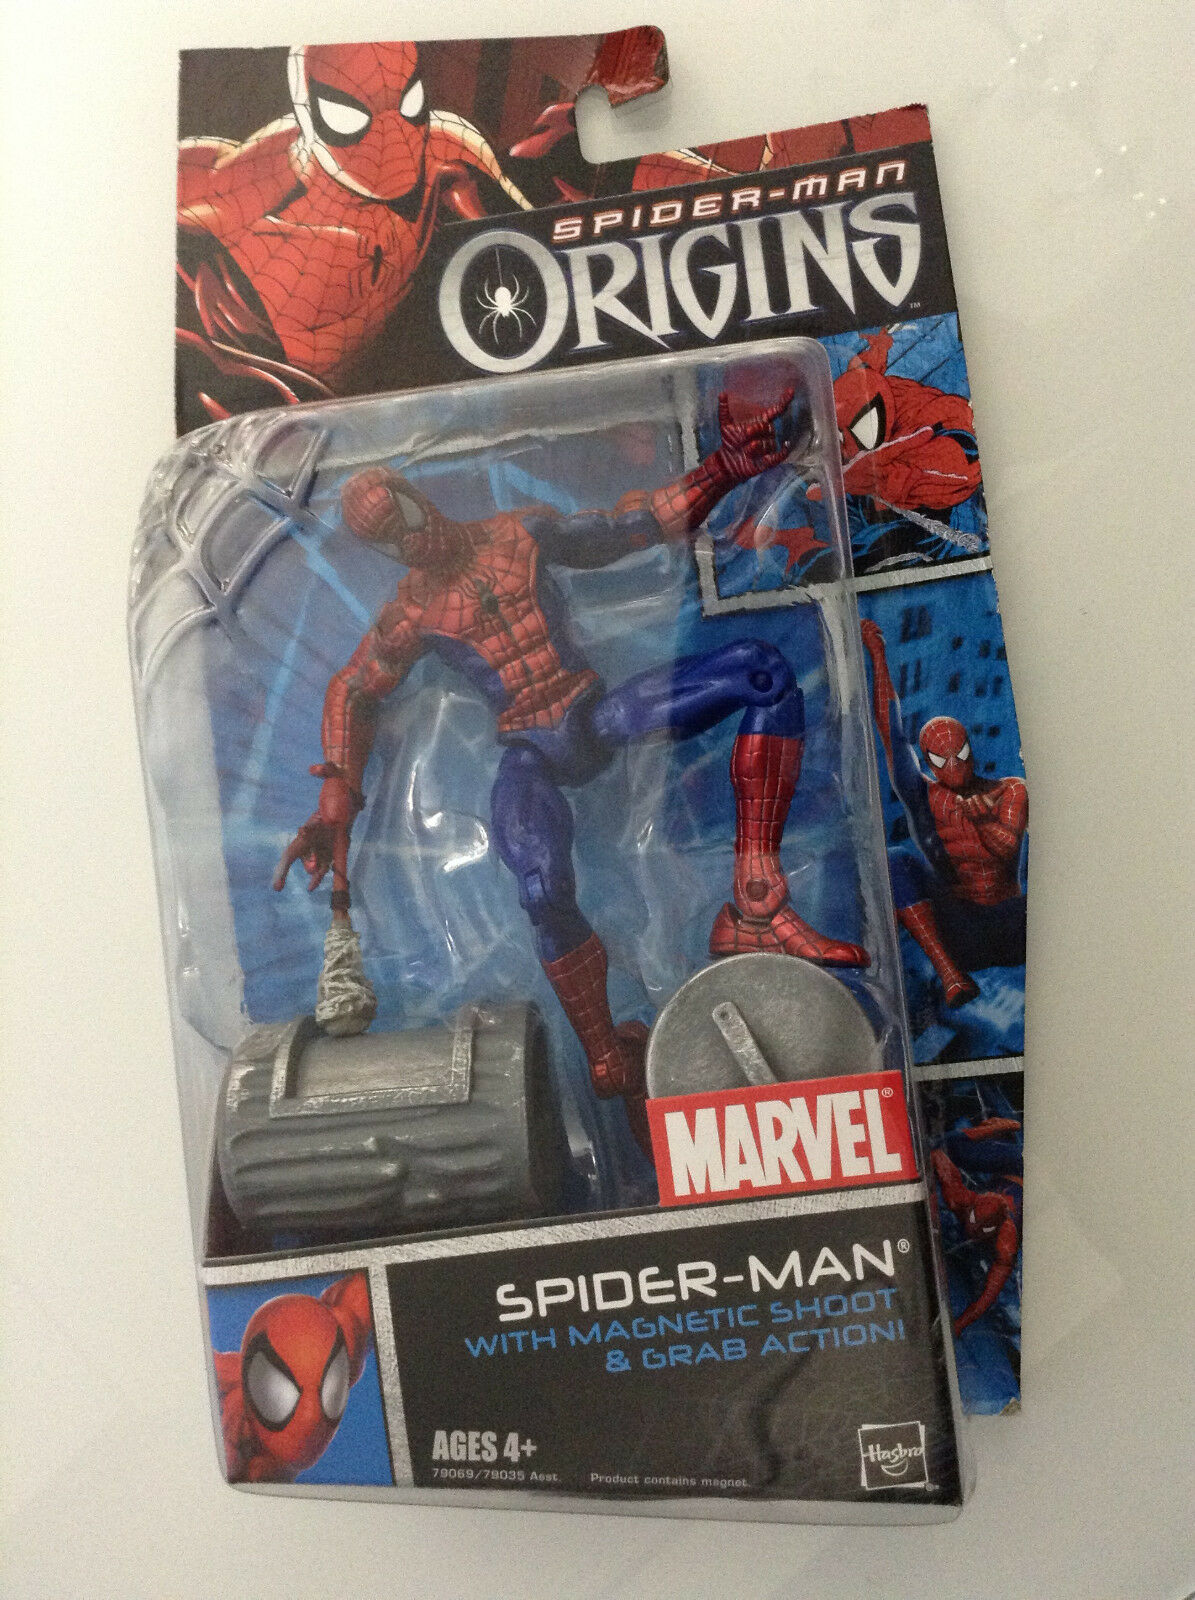 SPIDER-MAN ORIGINS w MAGNETIC SHOOT & GRAB ACTION FIGURE 6  HASBRO MIC MARVEL 12